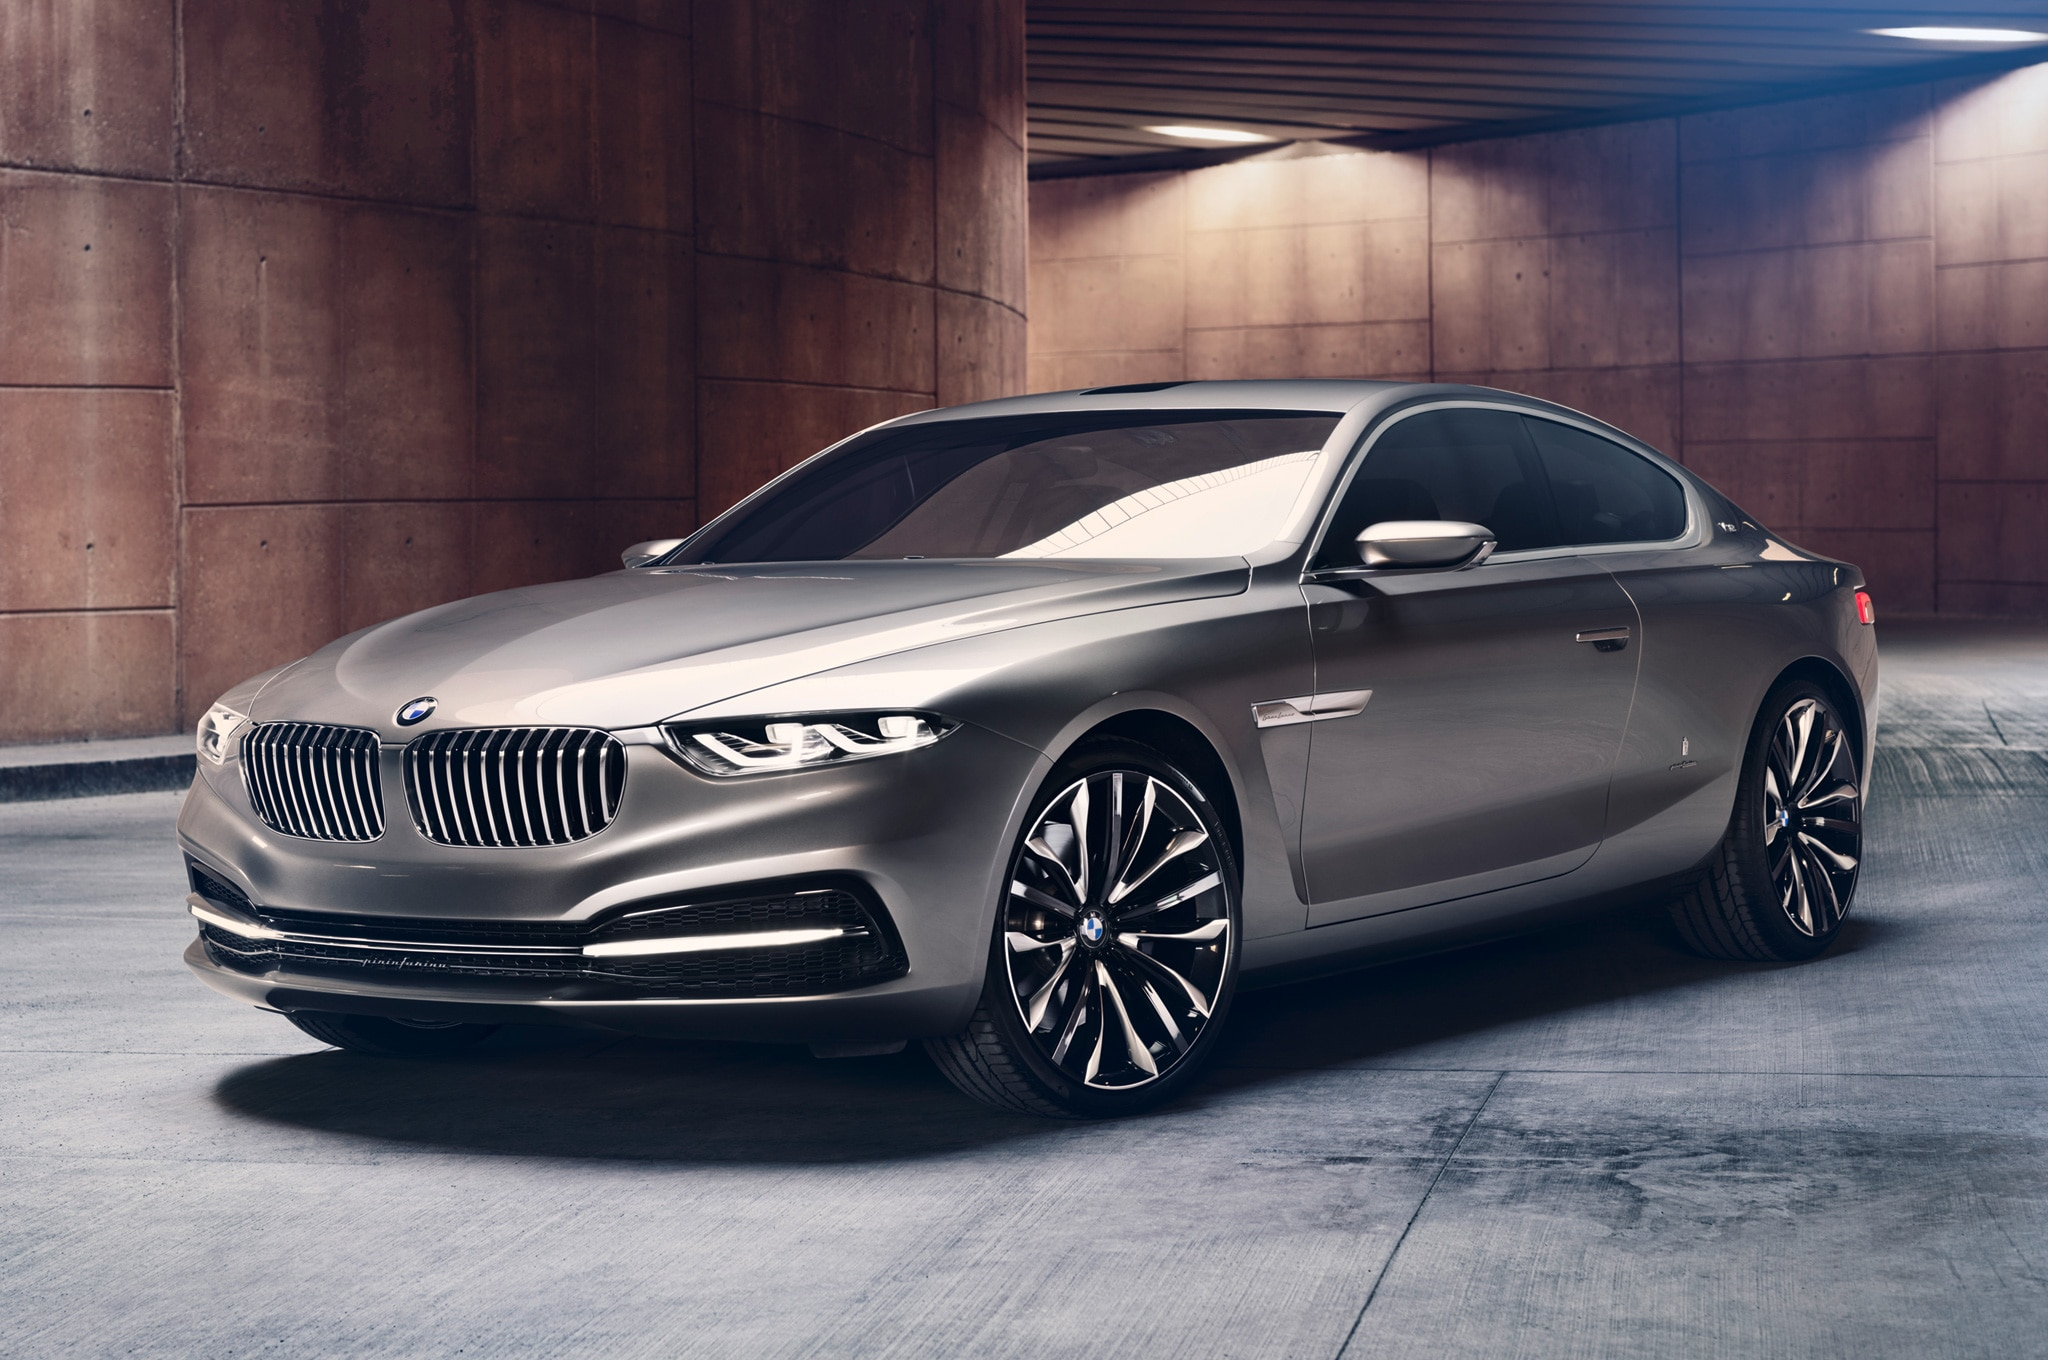 BMW Pininfarina Gran Lusso Coupe Concept First Look - Automobile ...